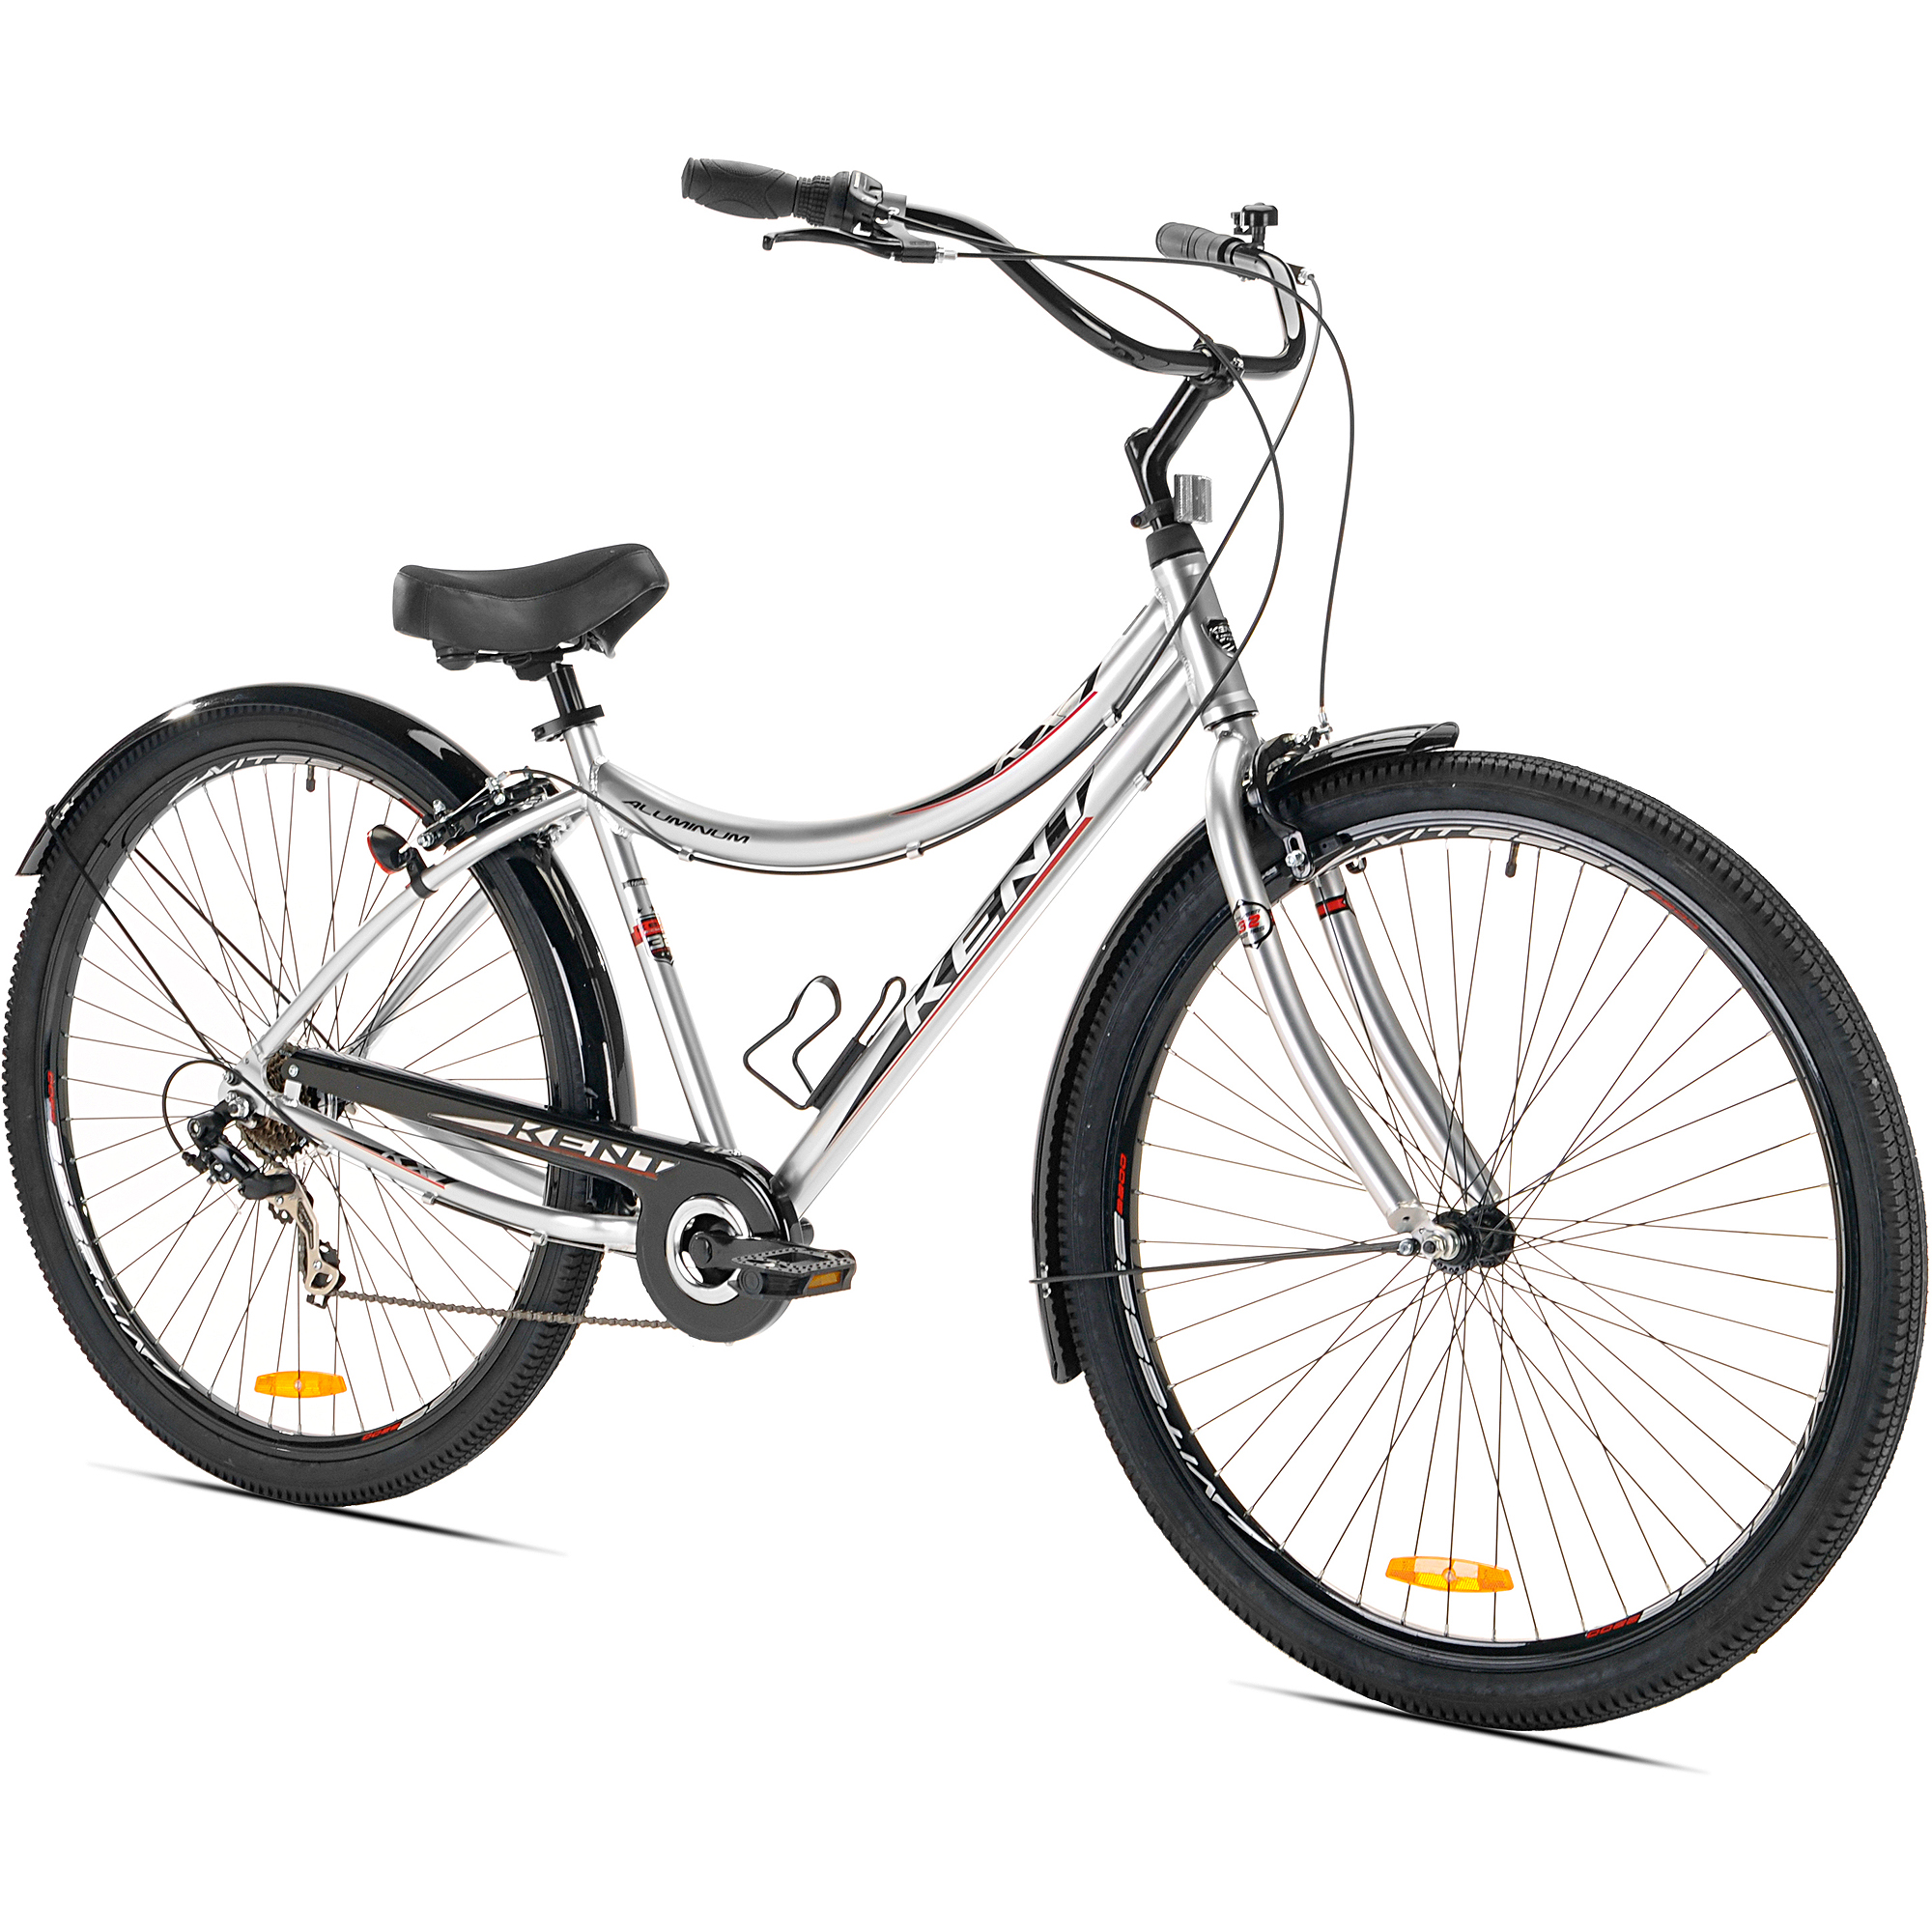 "32"" Kent KX-7 Men's Cruiser Bike, Silver"